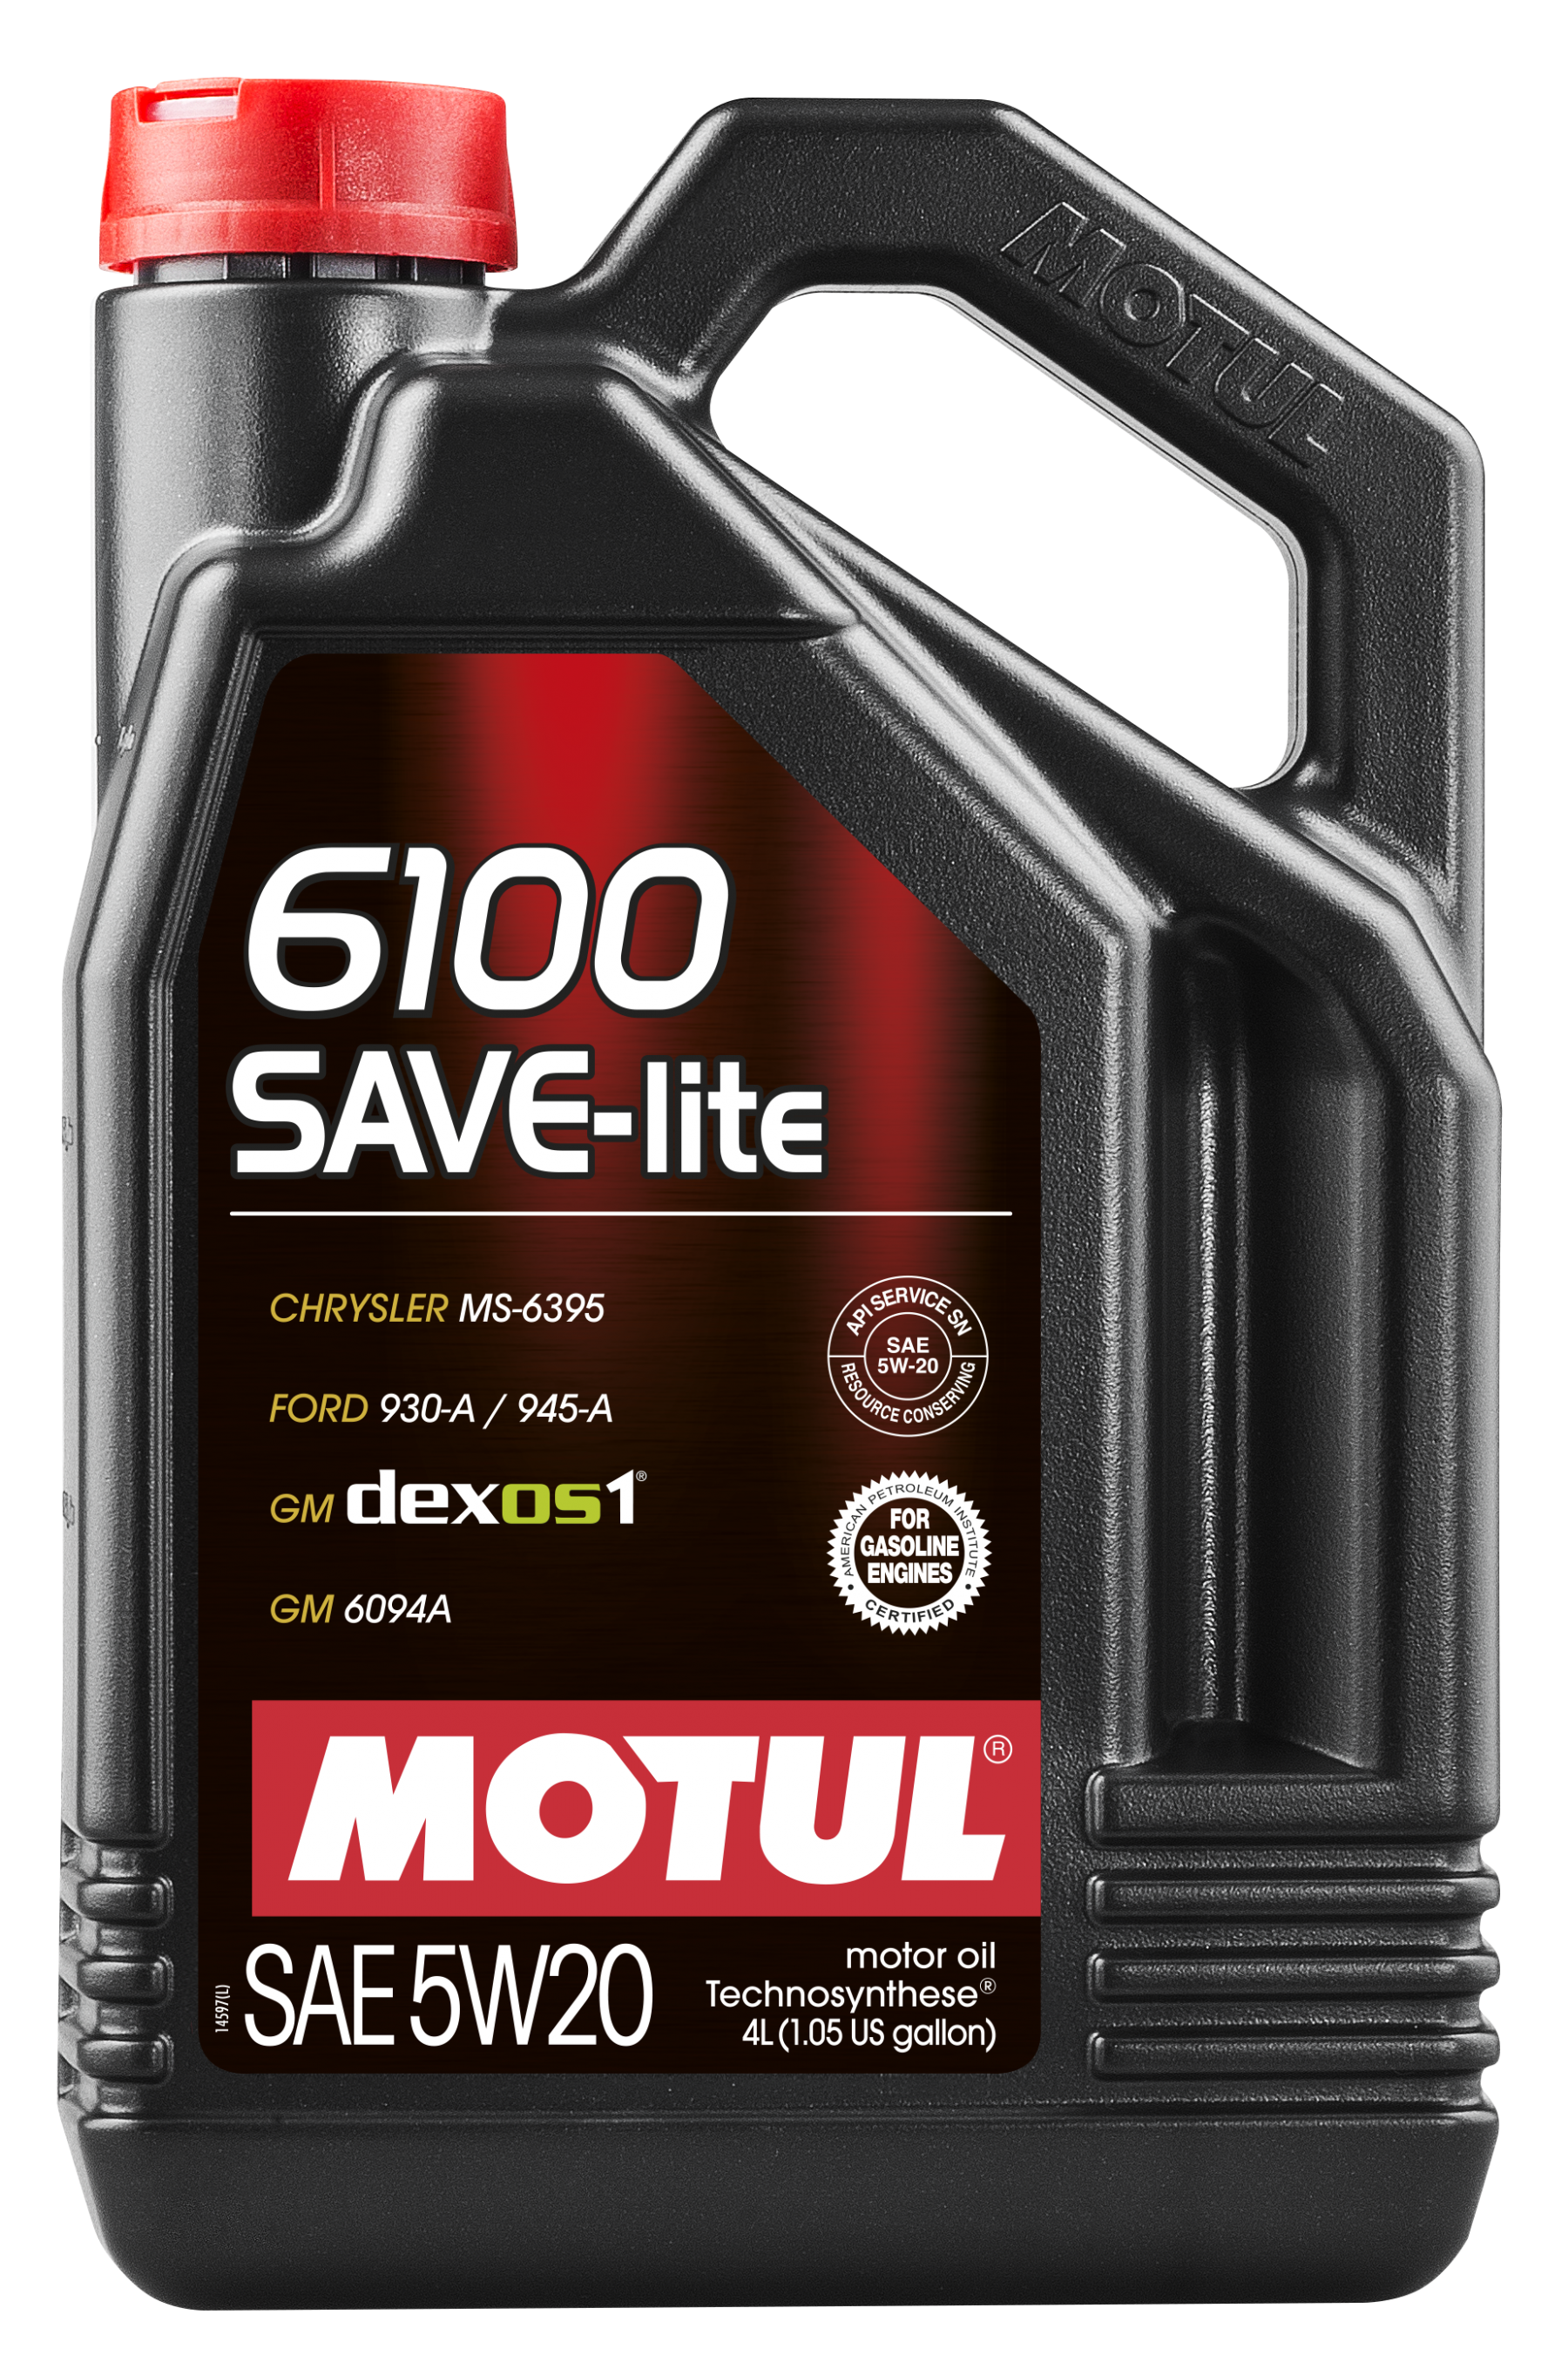 Motul 6100 Save-lite 5W-20